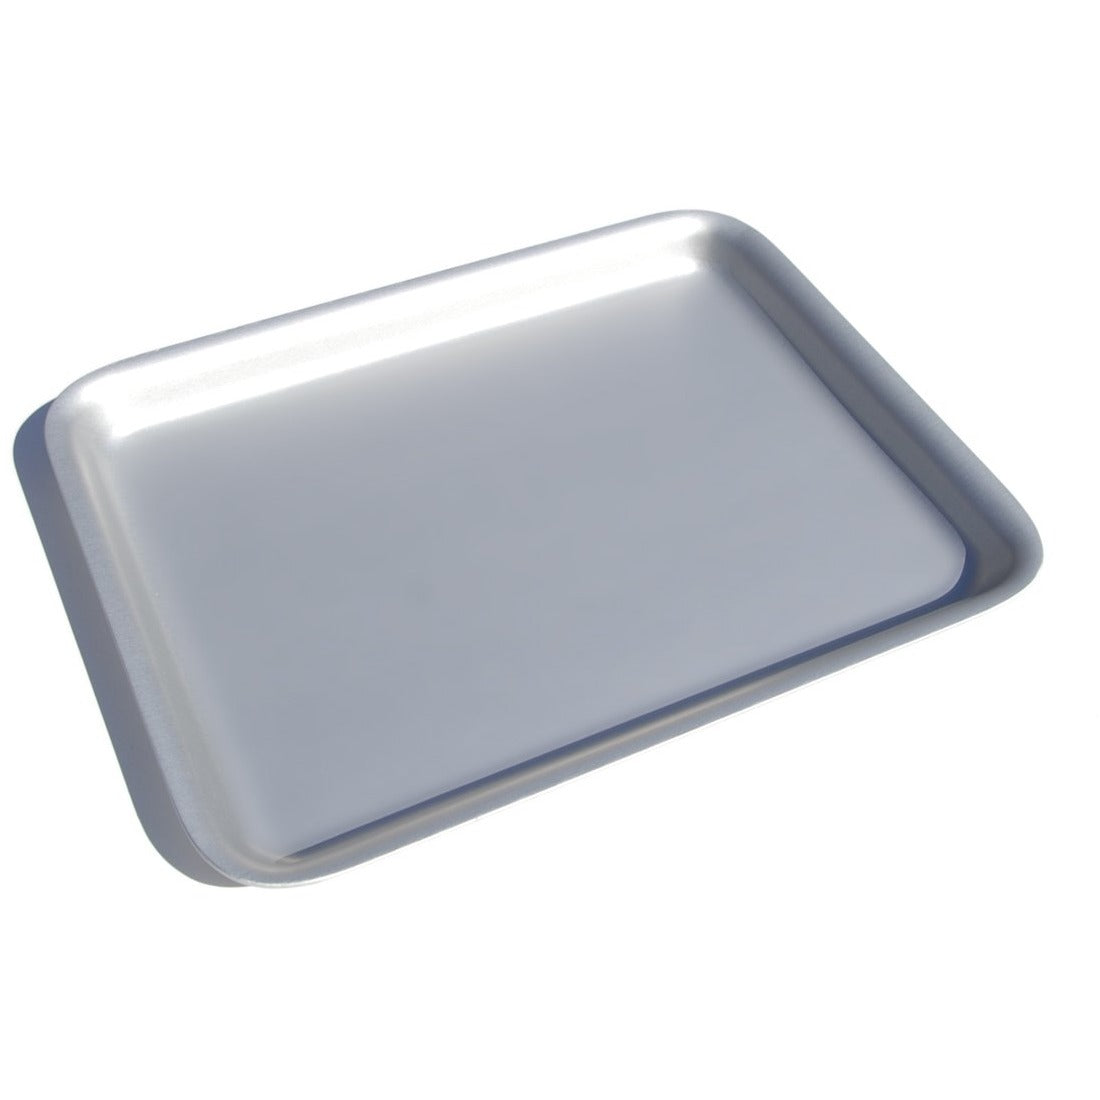 "Silverwood 10 x 8"" Oven Tray"